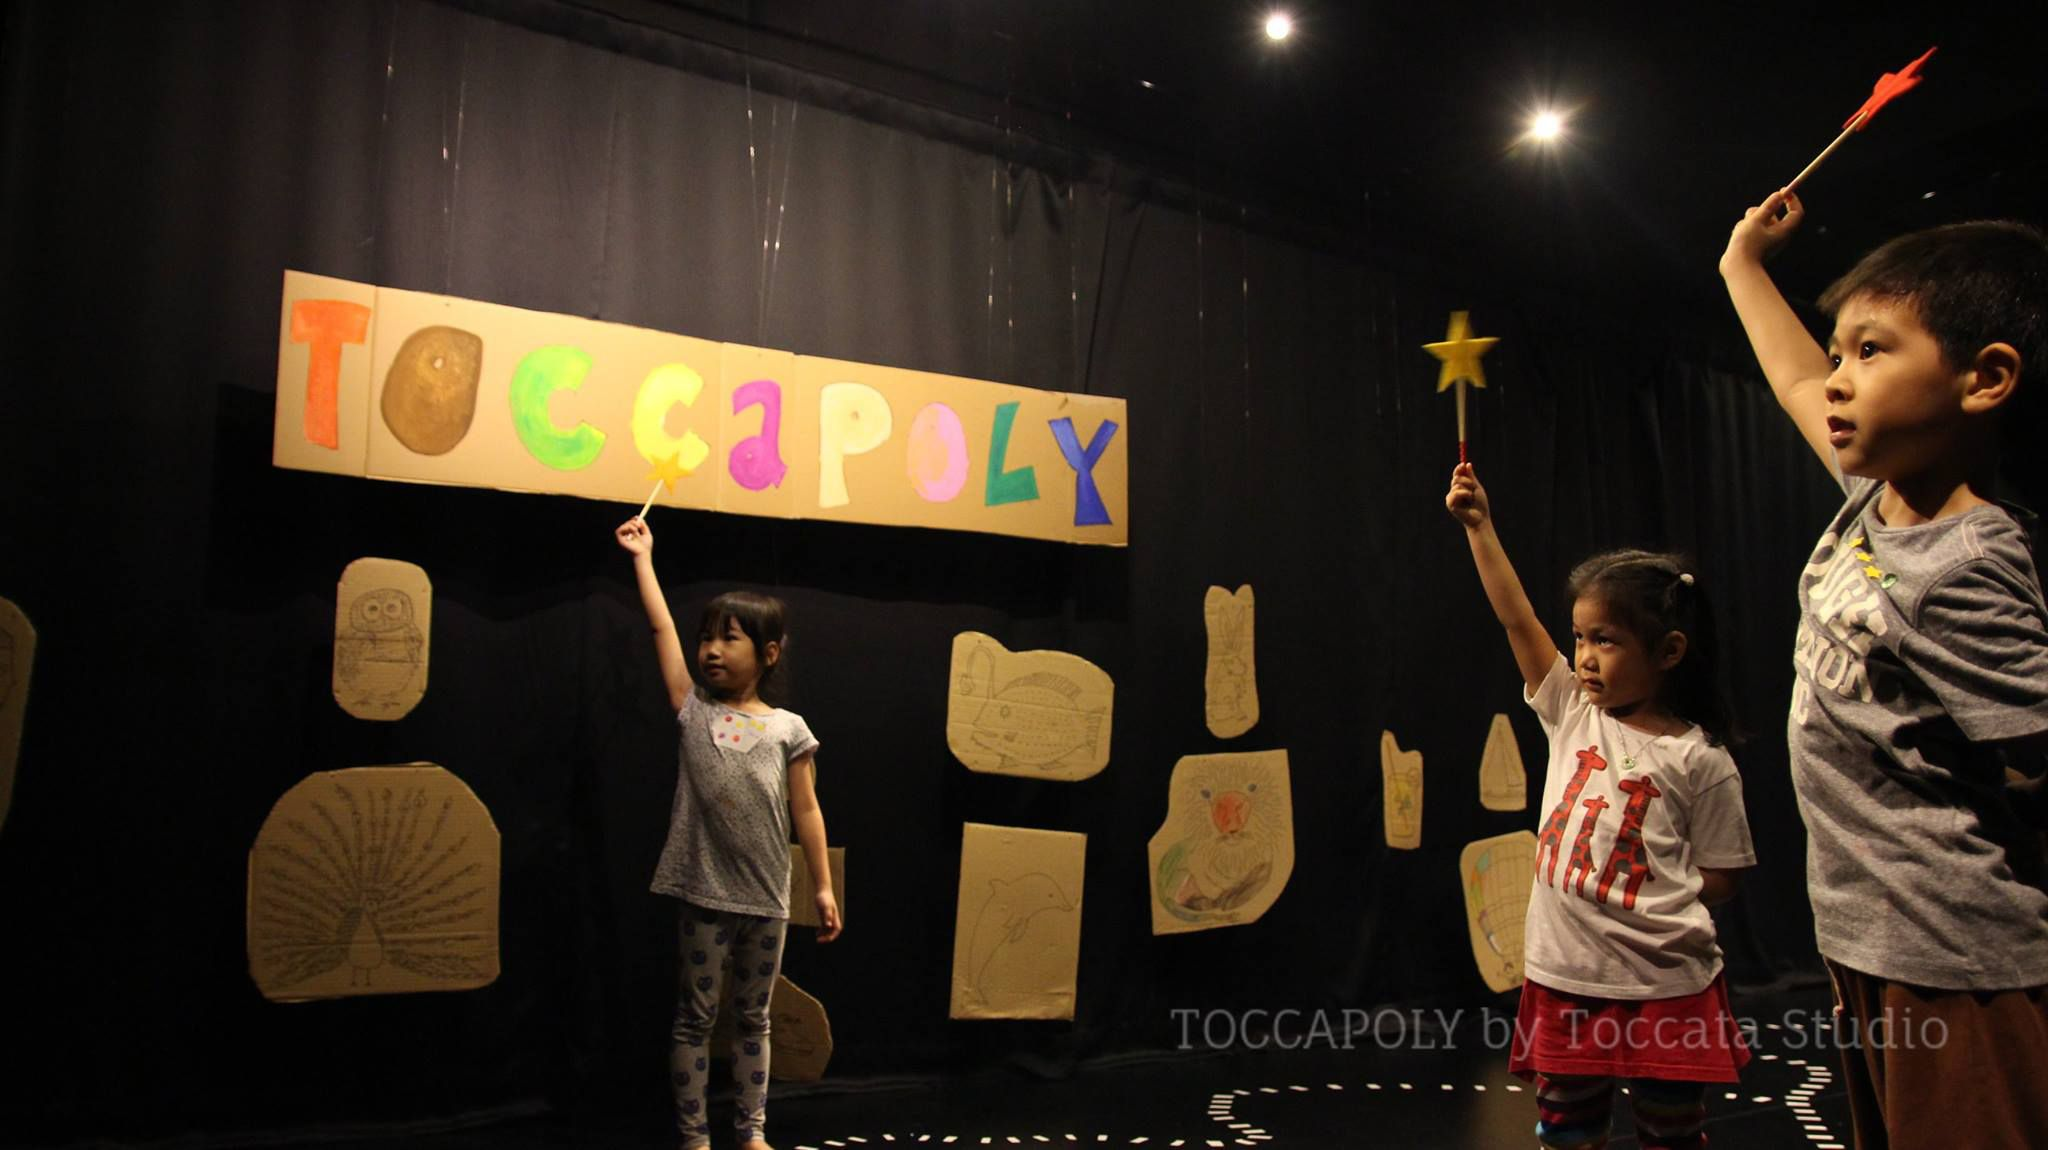 Toccapoly 05